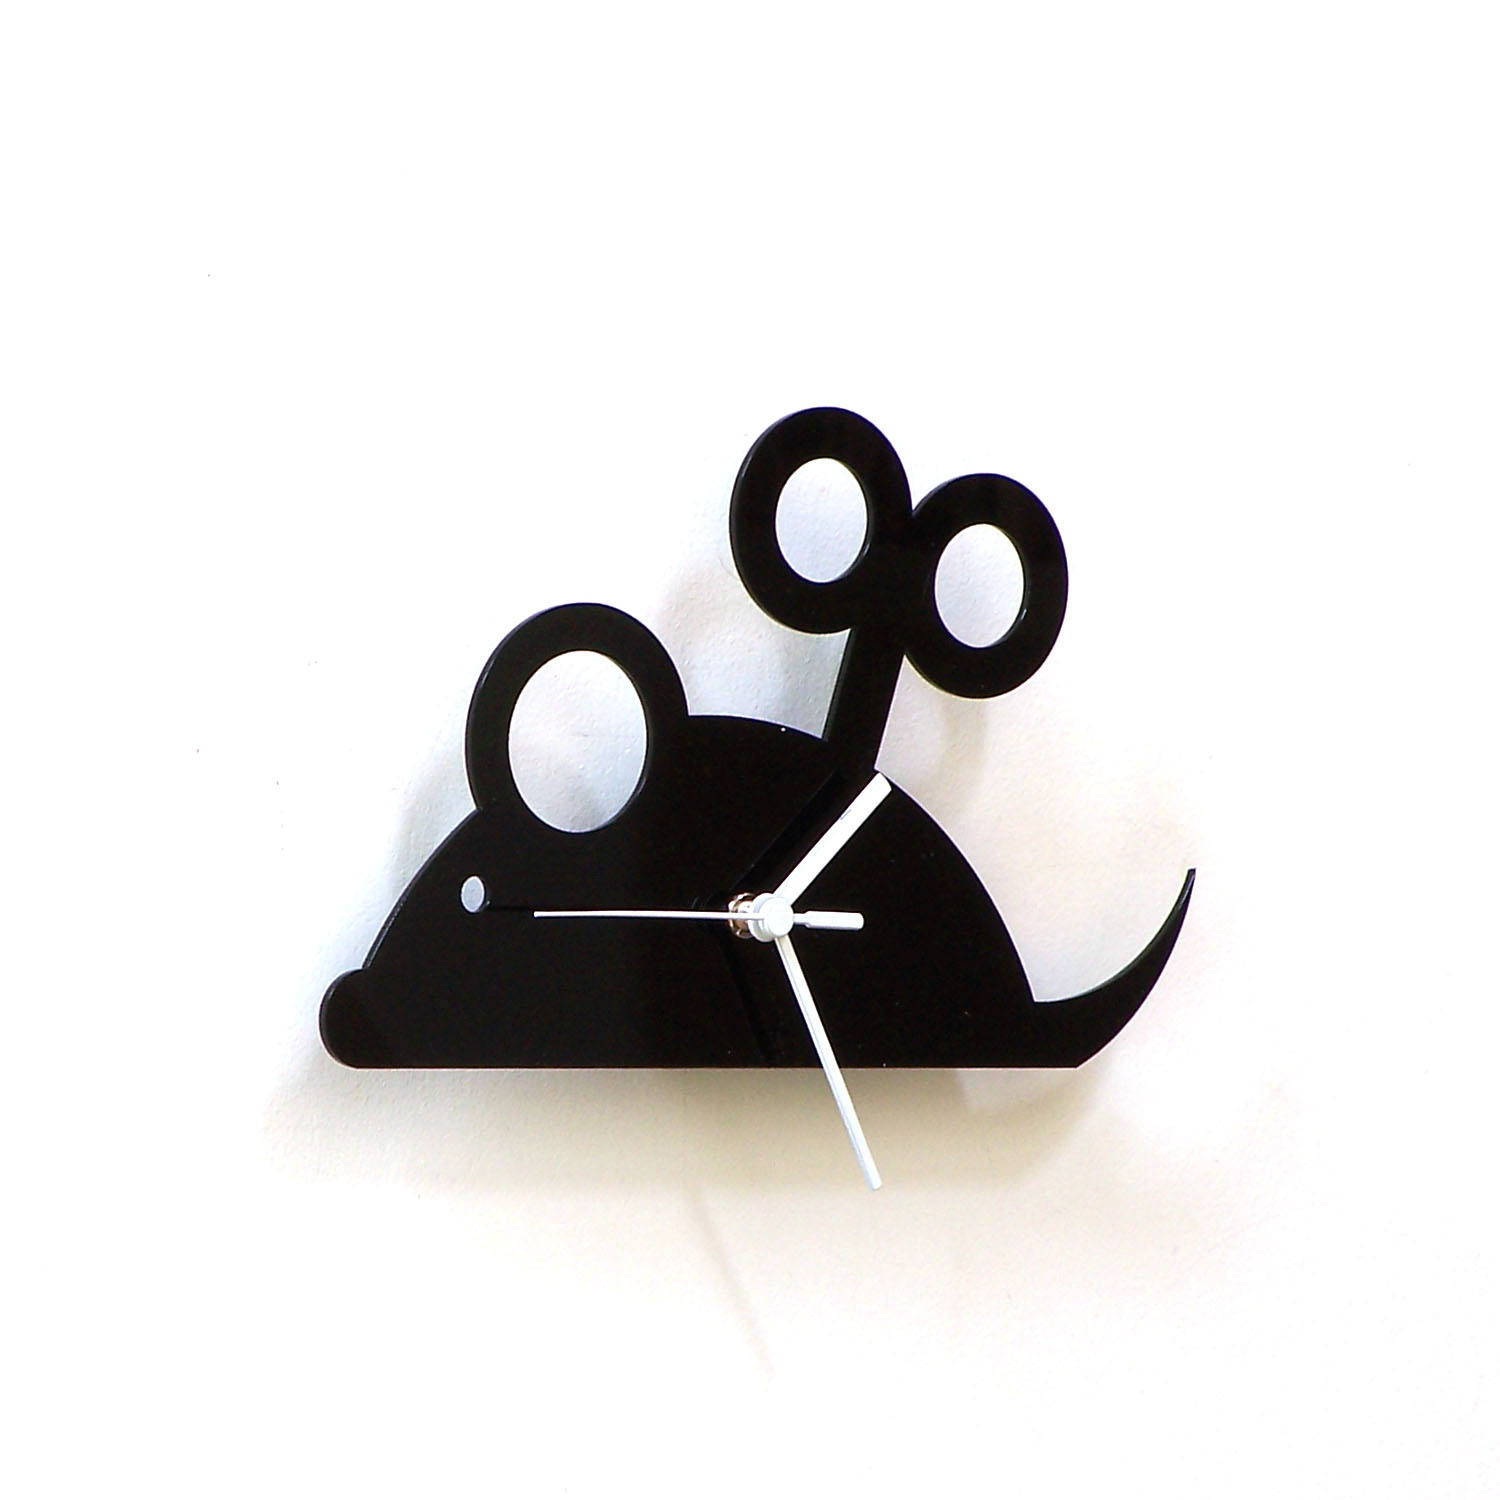 Wind up toy mouse - black acrylic wall clock, a piece of retro wall art